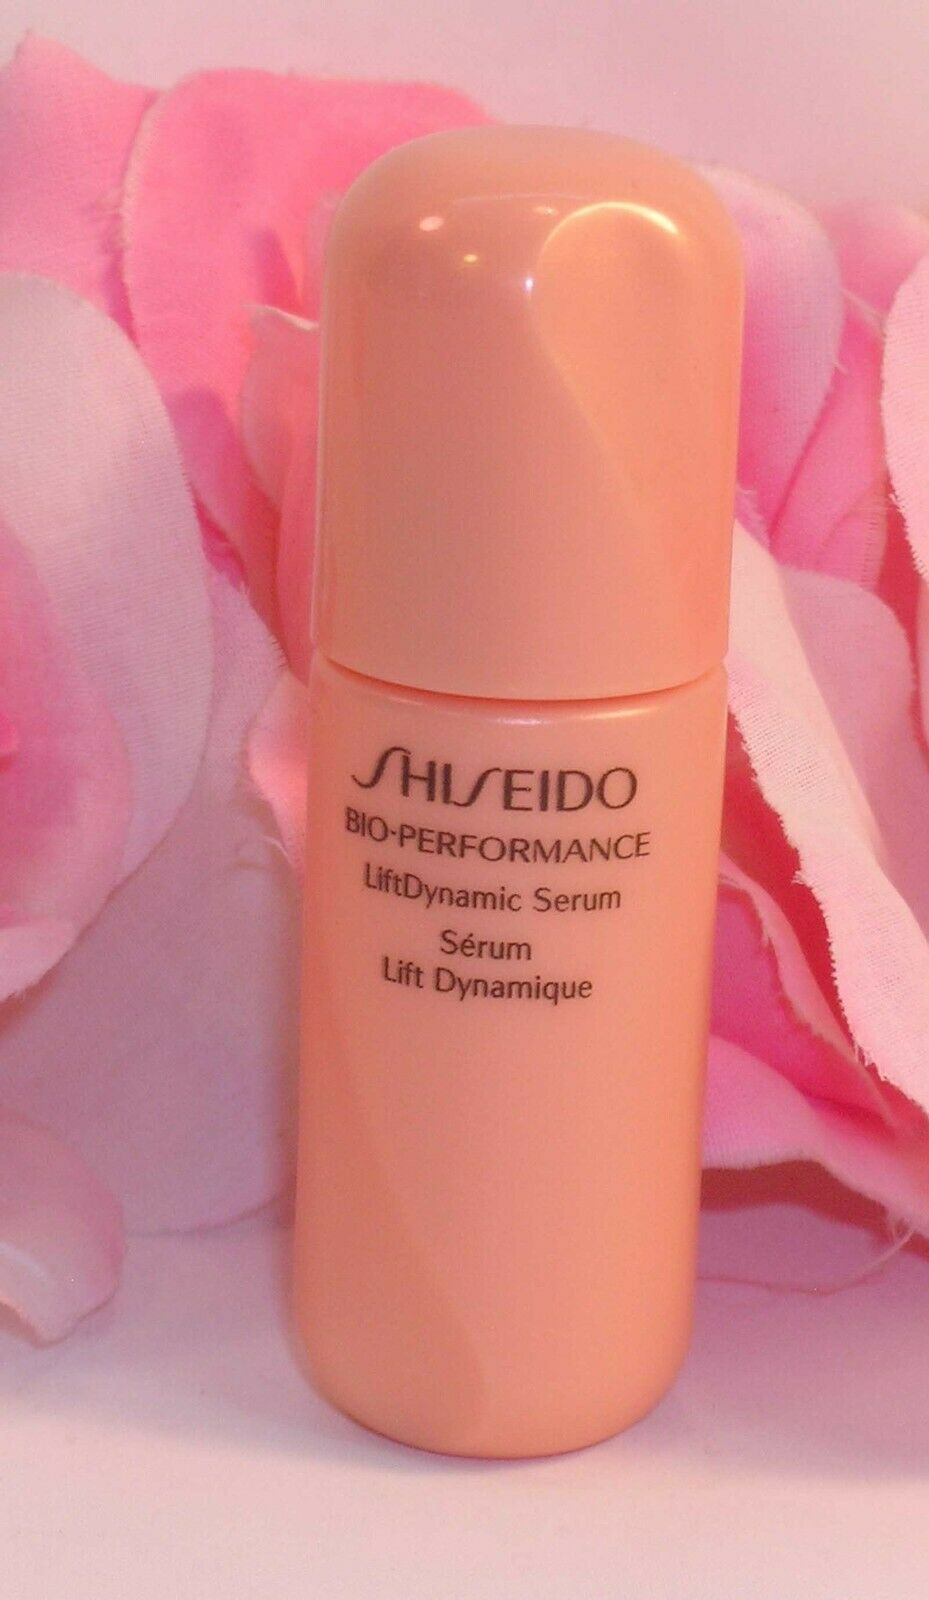 Primary image for New Shiseido Bio-Performance Lift Dynamic Serum .25 oz 7 ml Travel Sample Size